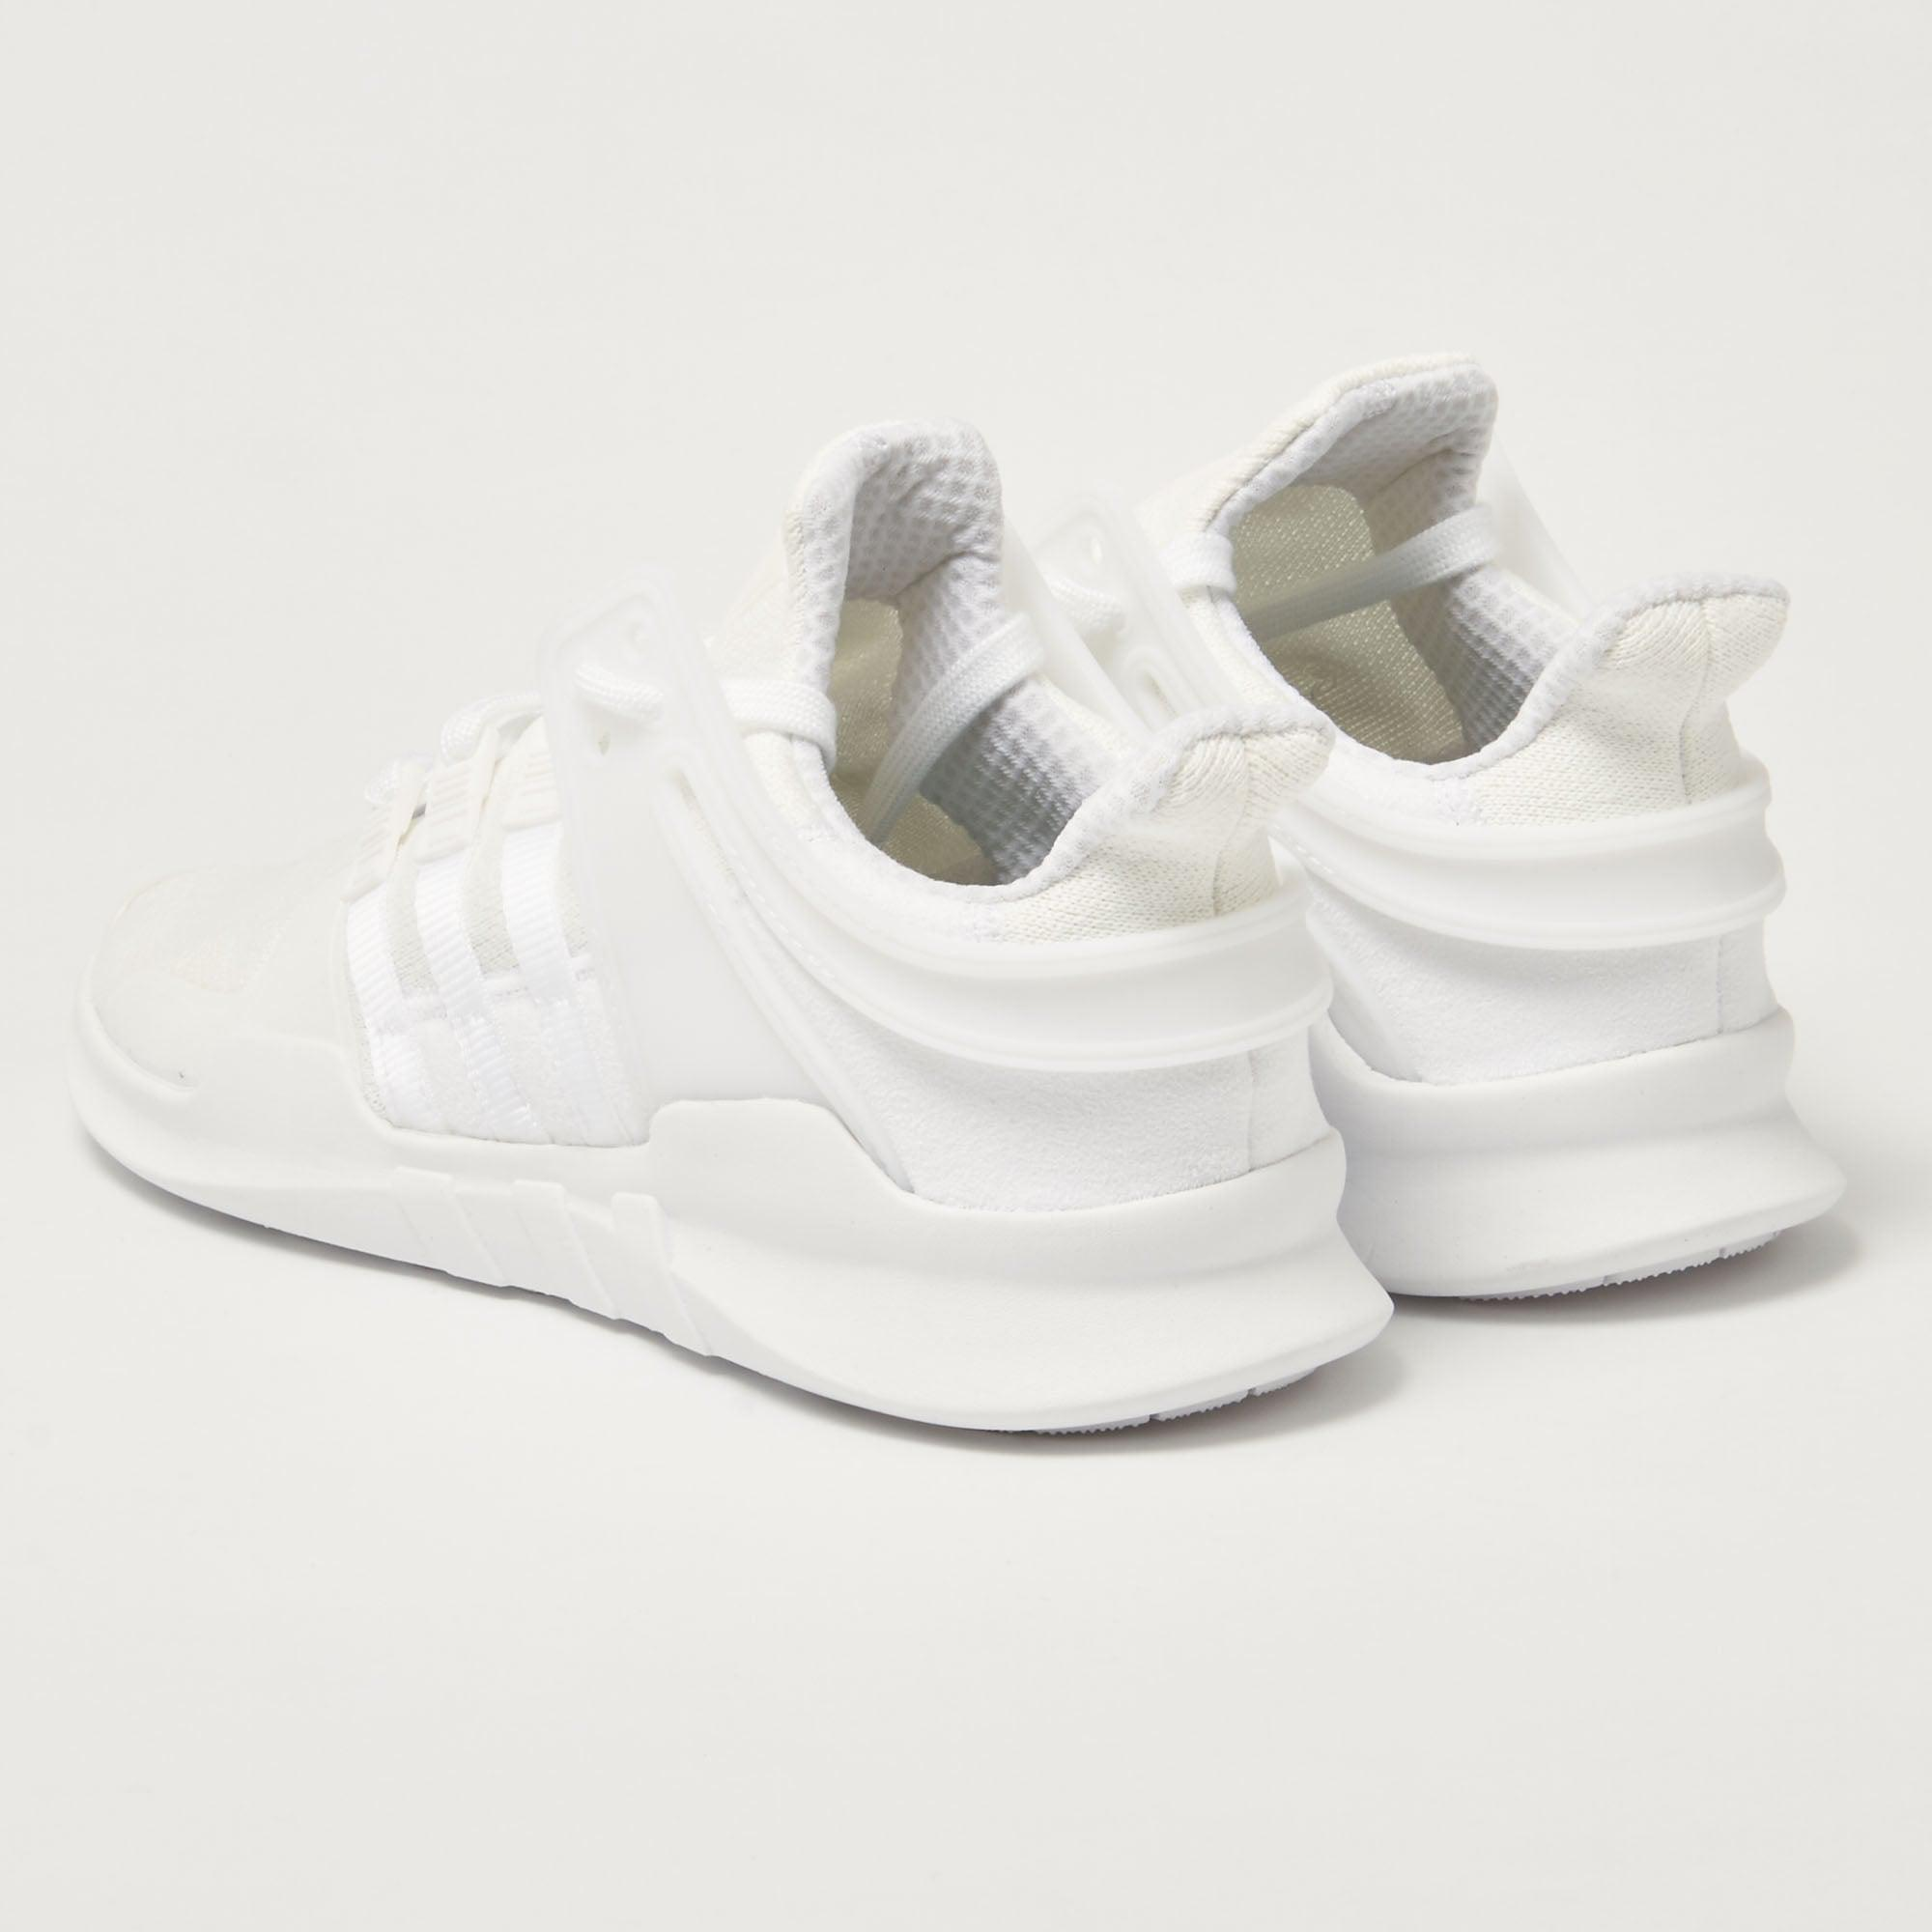 Support Originals In Lyst White Adidas Eqt Trainers Adv xFwfqpZft